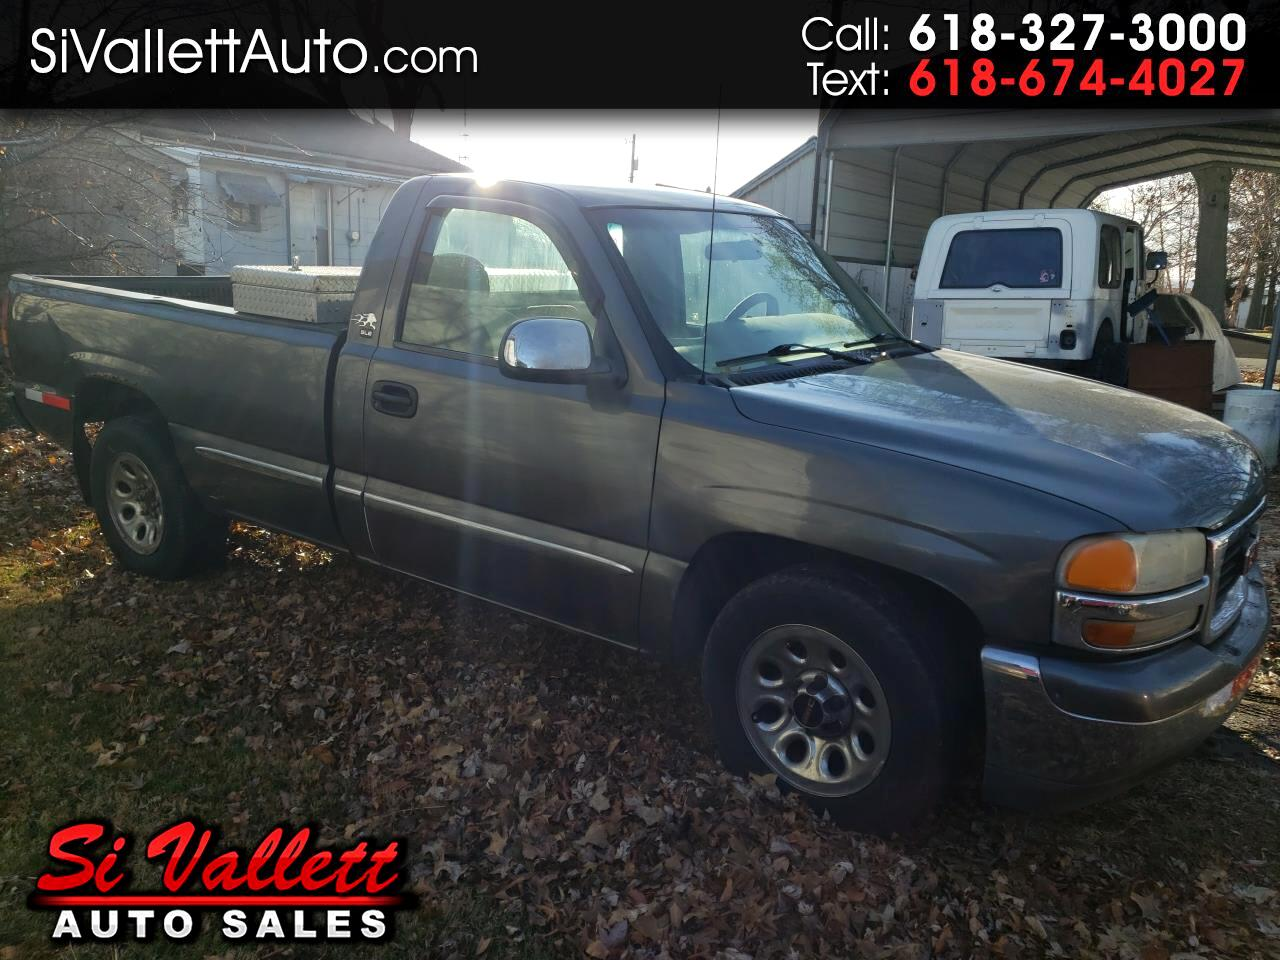 2000 GMC New Sierra 1500 Reg Cab 133.0